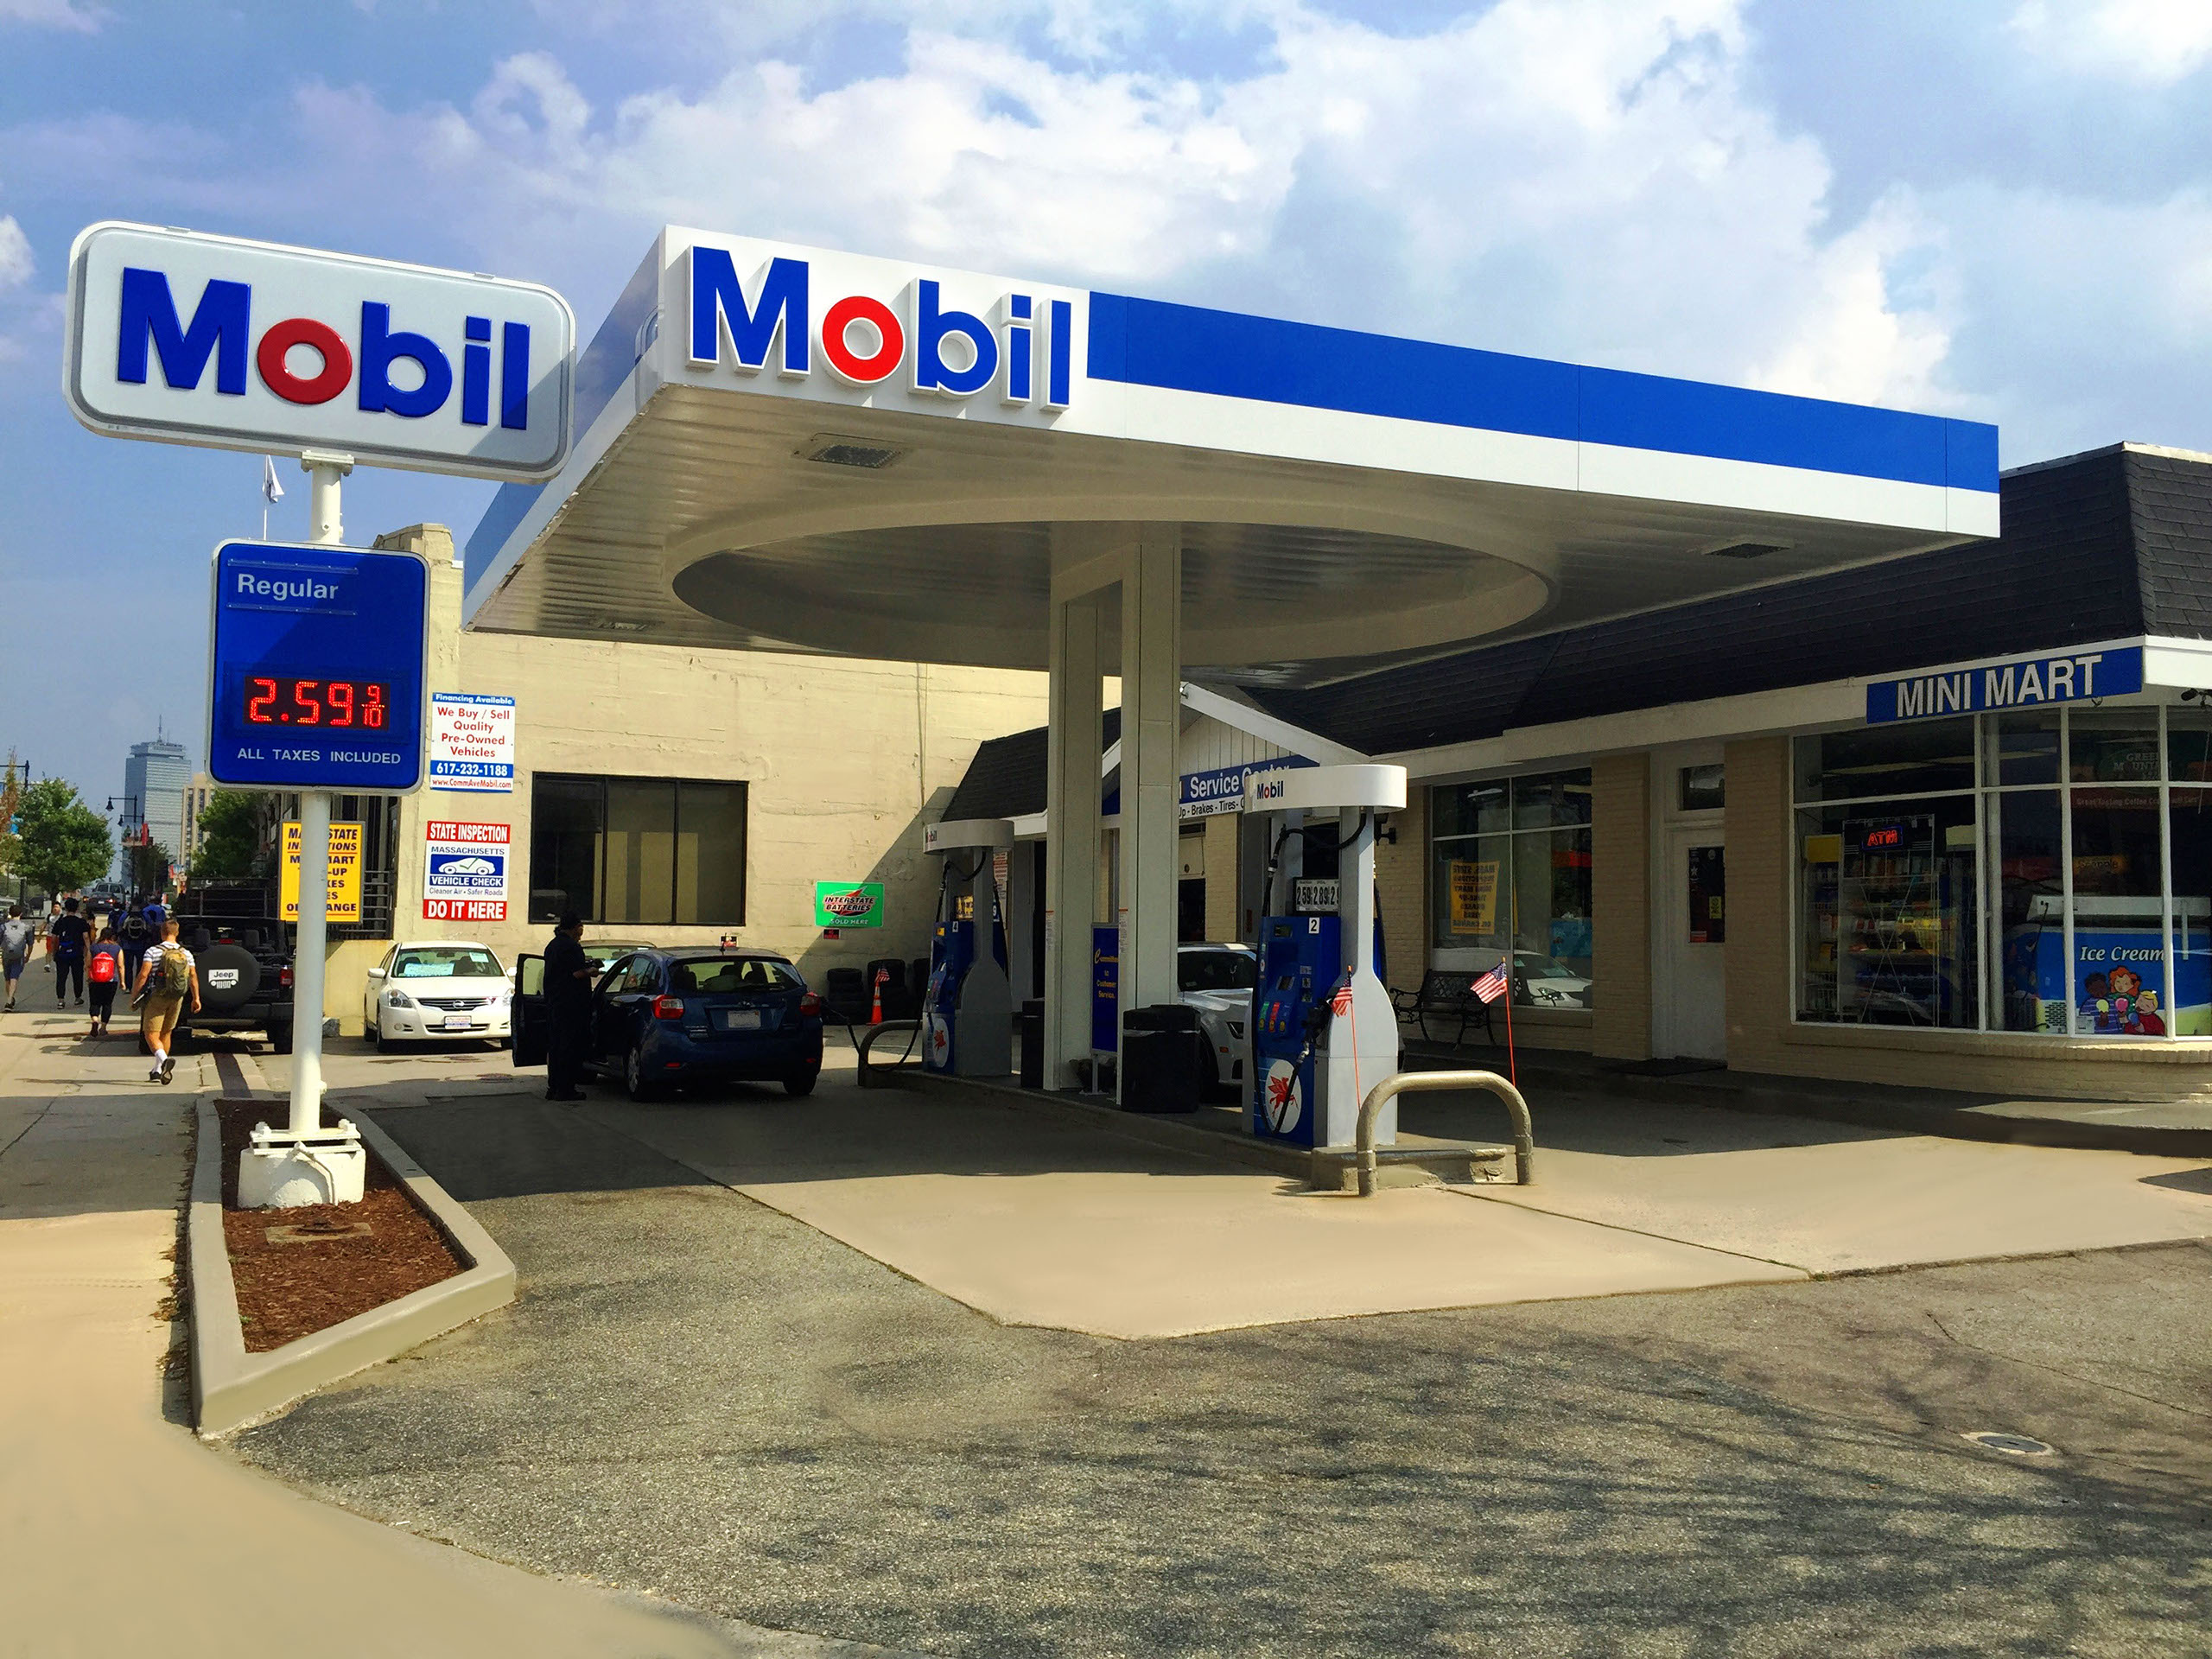 Mobil oil gas station locations - S&p 5 star rated stocks